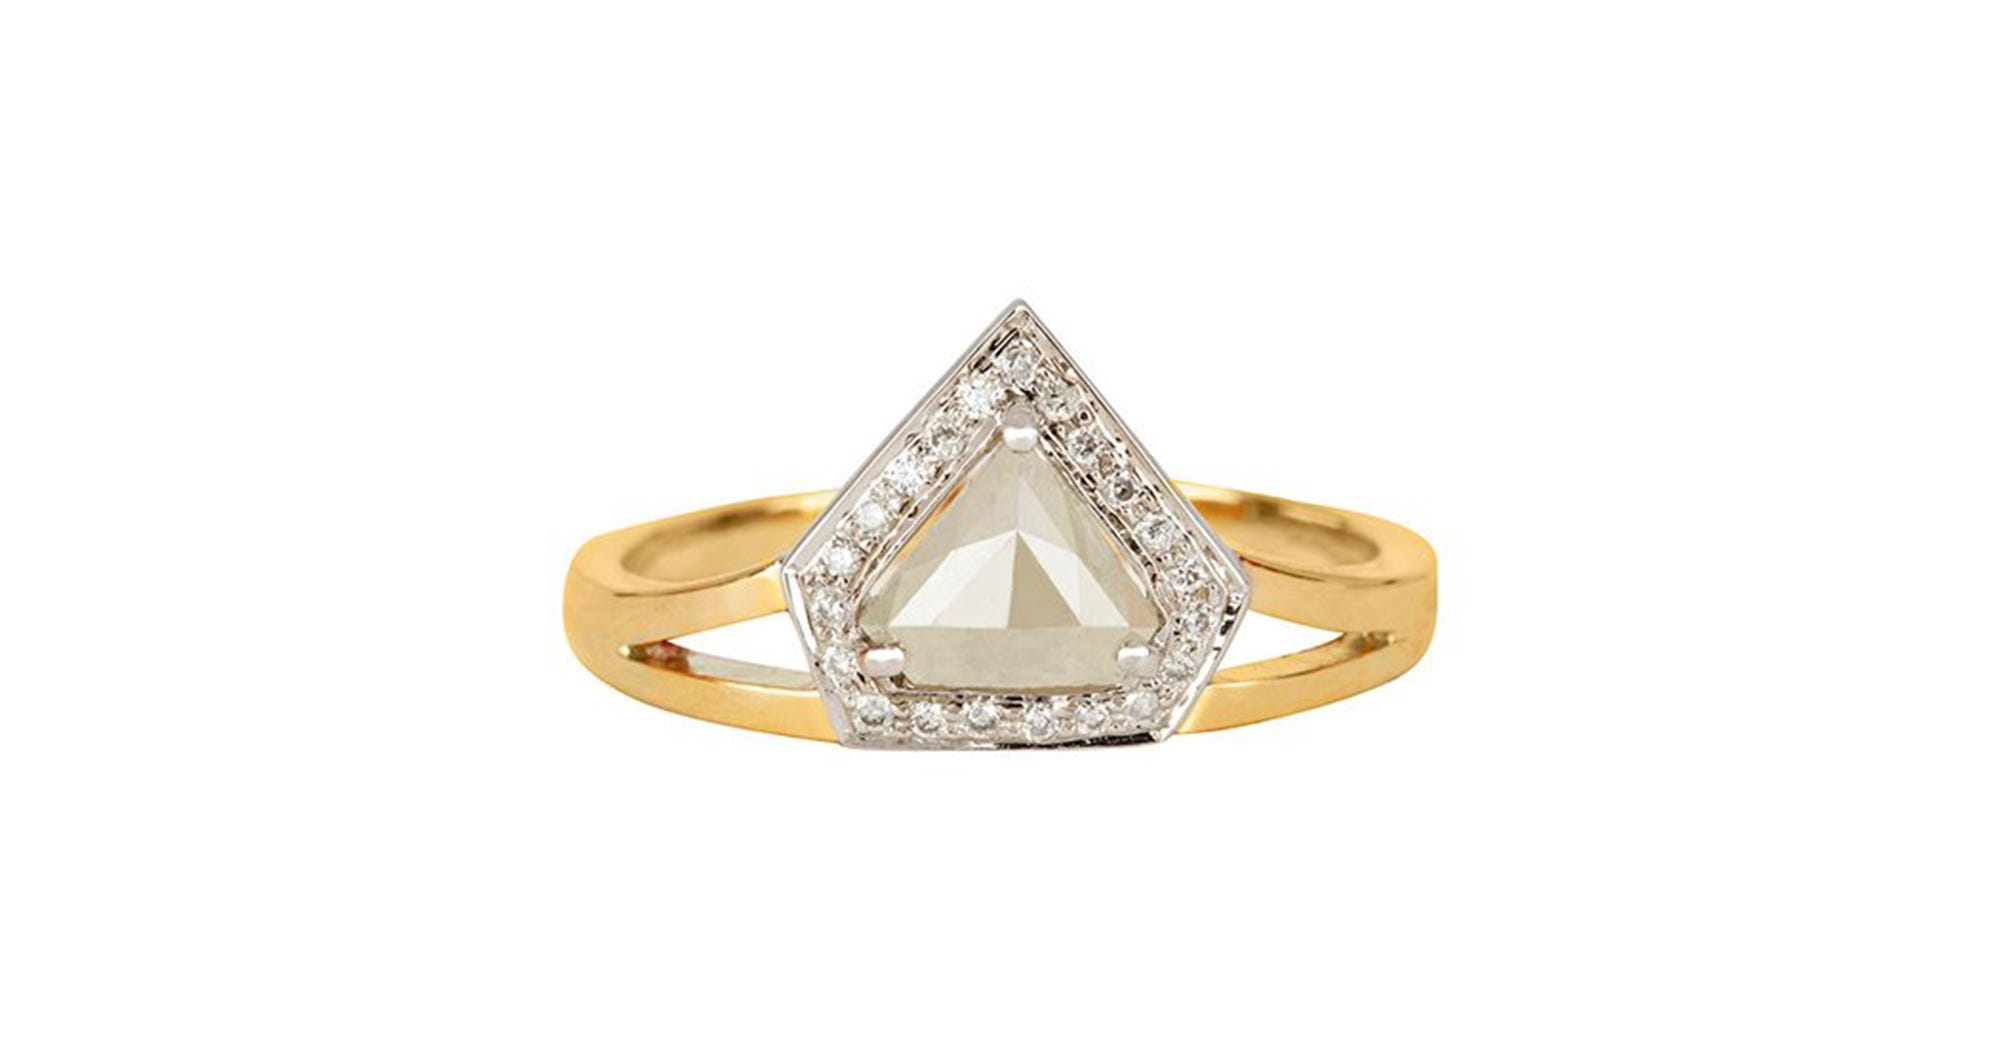 special love rings mazzucchelli you collections moments from ring life show unmatched s celebrating collection and offers the beauty engagement since her wang much w this incomparable vera t gold captivating quality yellow n how